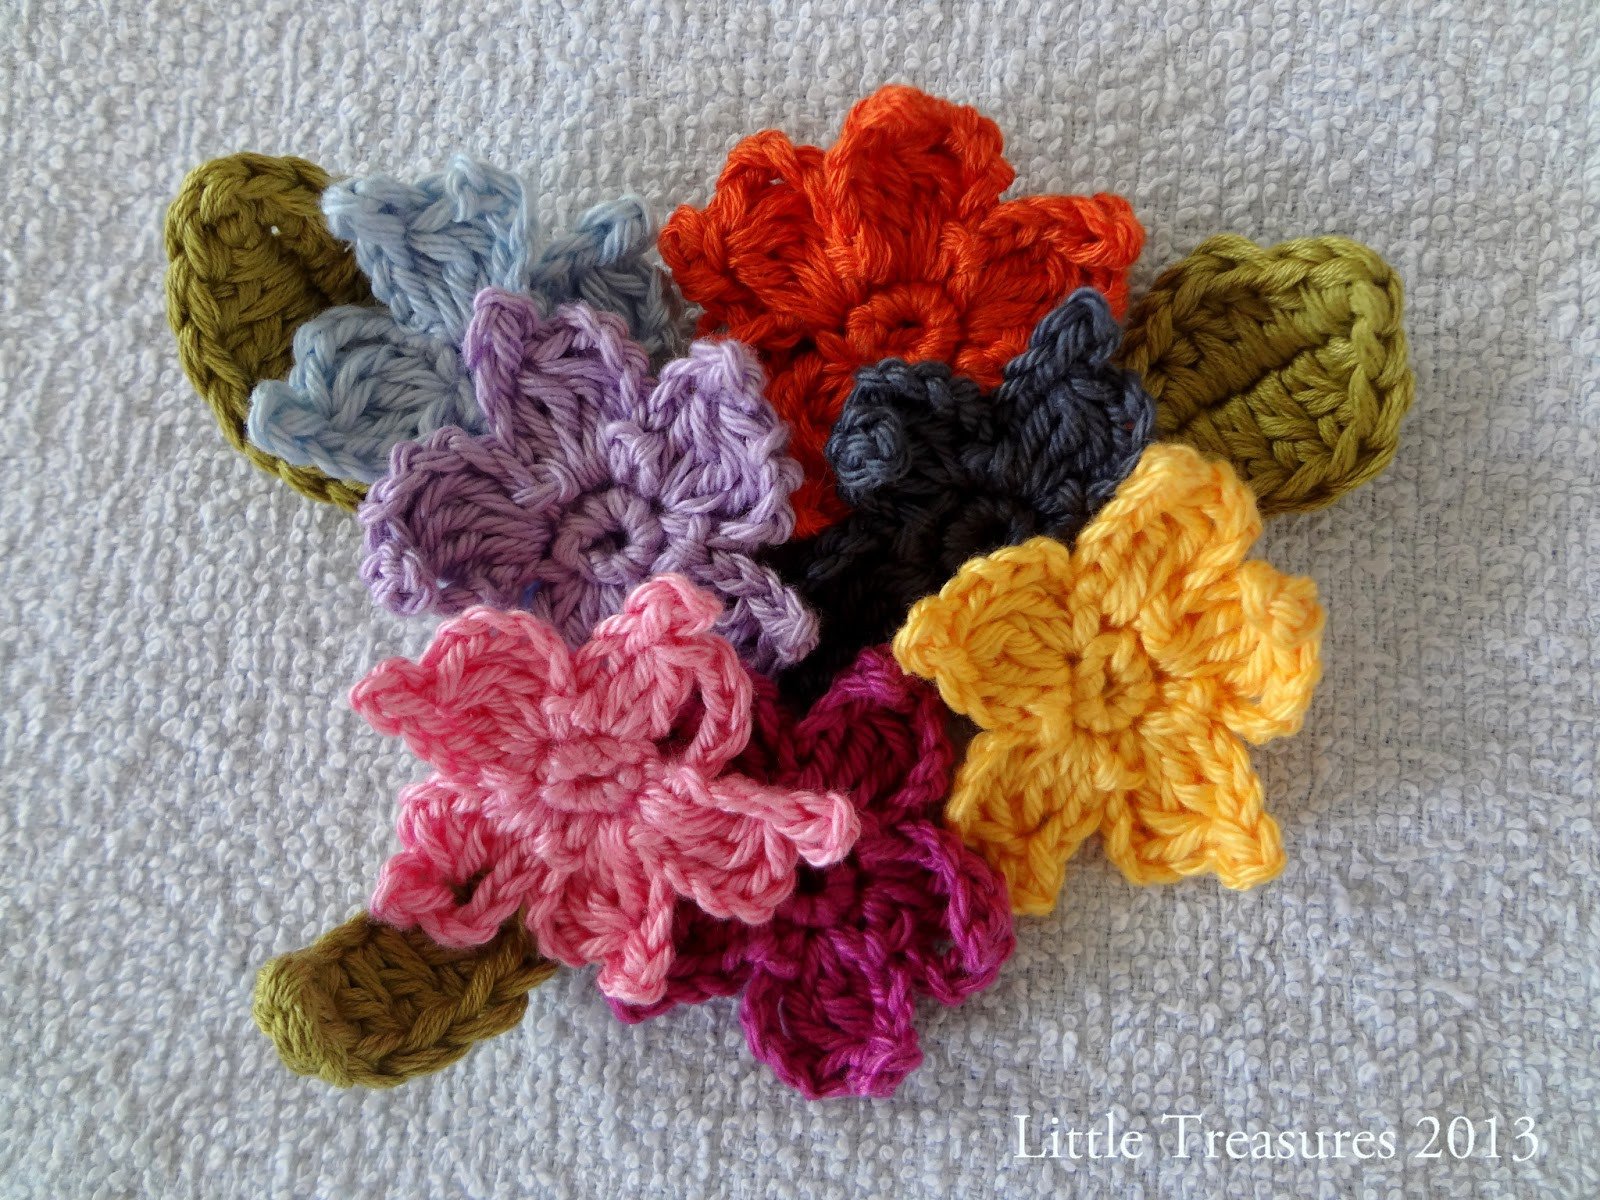 Crochet Tutorial Elegant Little Treasures Adenium Free Crochet Flower Tutorial Of Wonderful 48 Ideas Crochet Tutorial